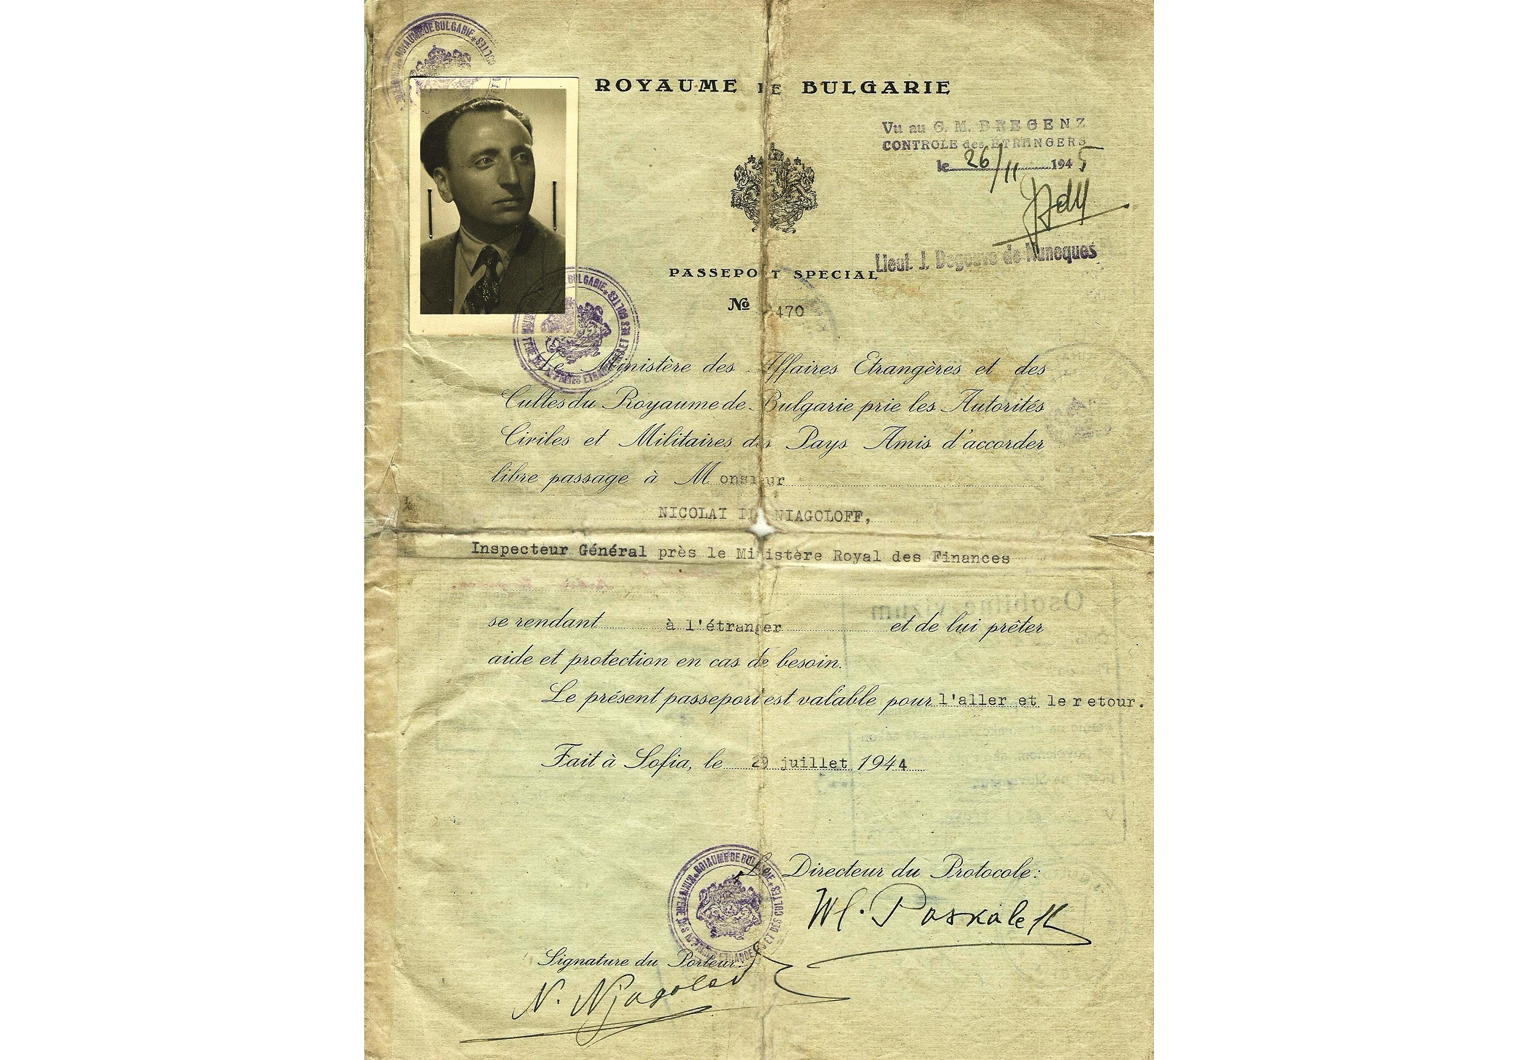 WW2 Axis Special Passport